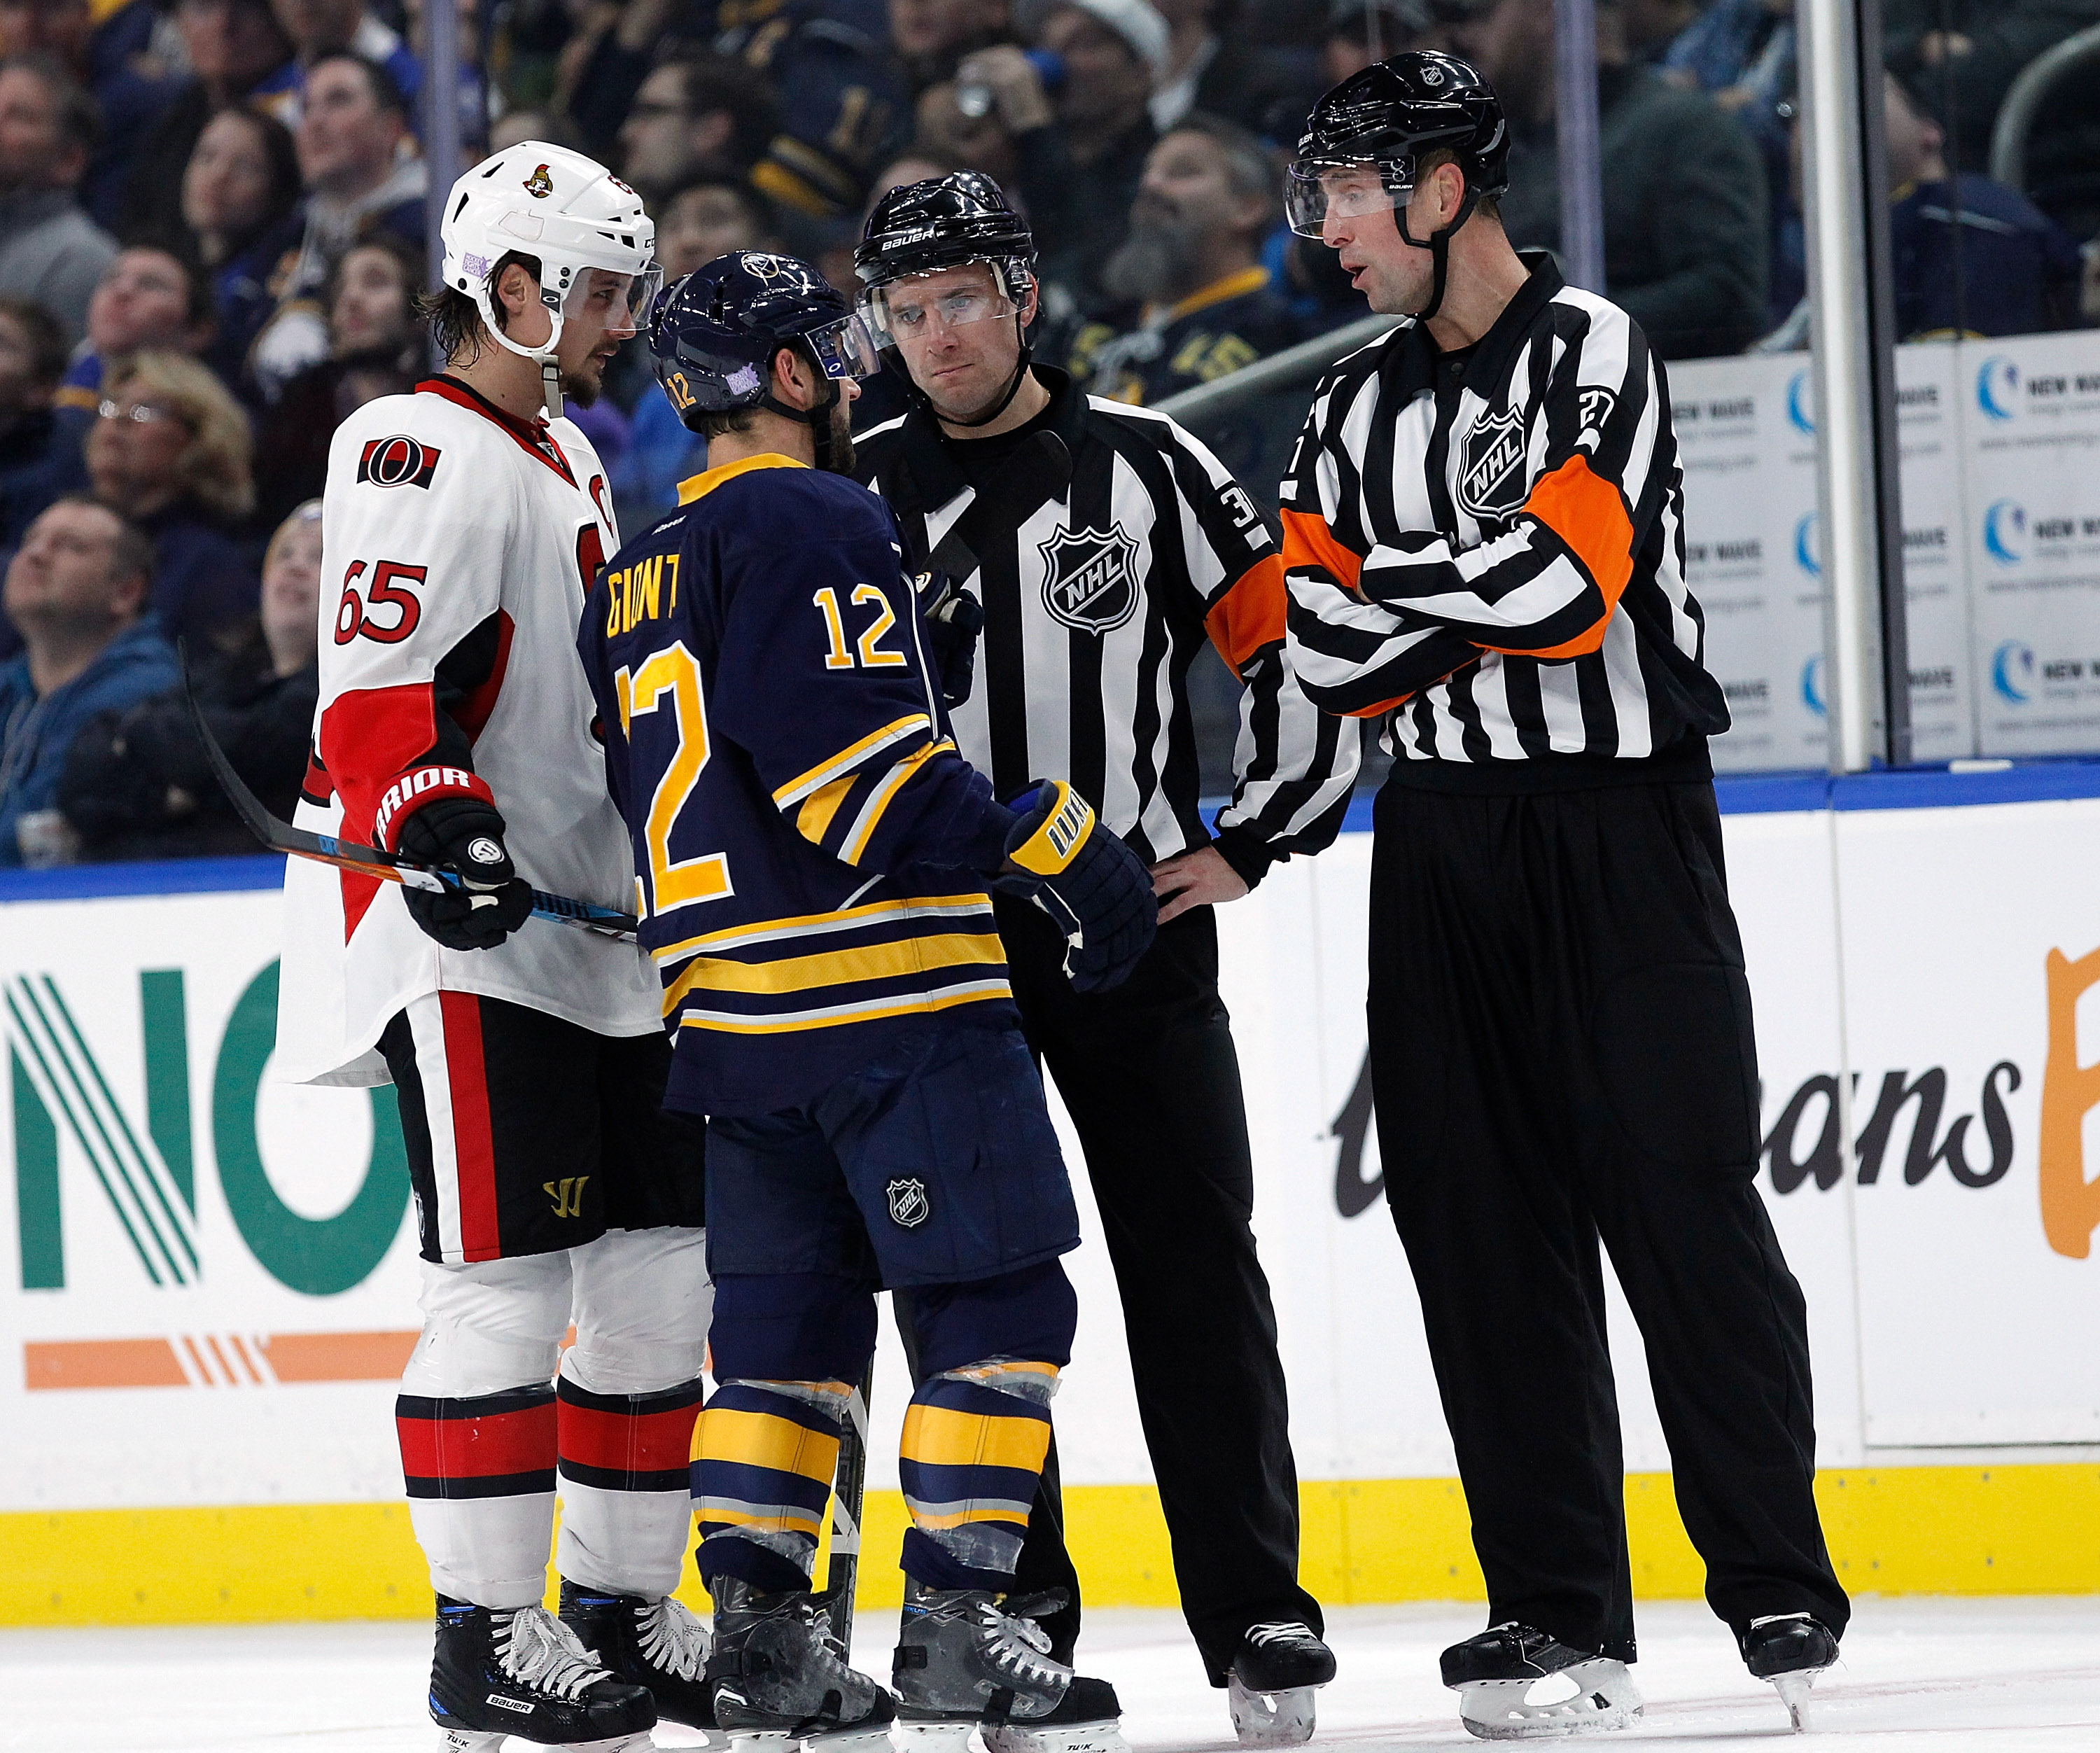 Brian Gionta and the Sabres have had a lot of interaction with referees lately. (Getty Images)